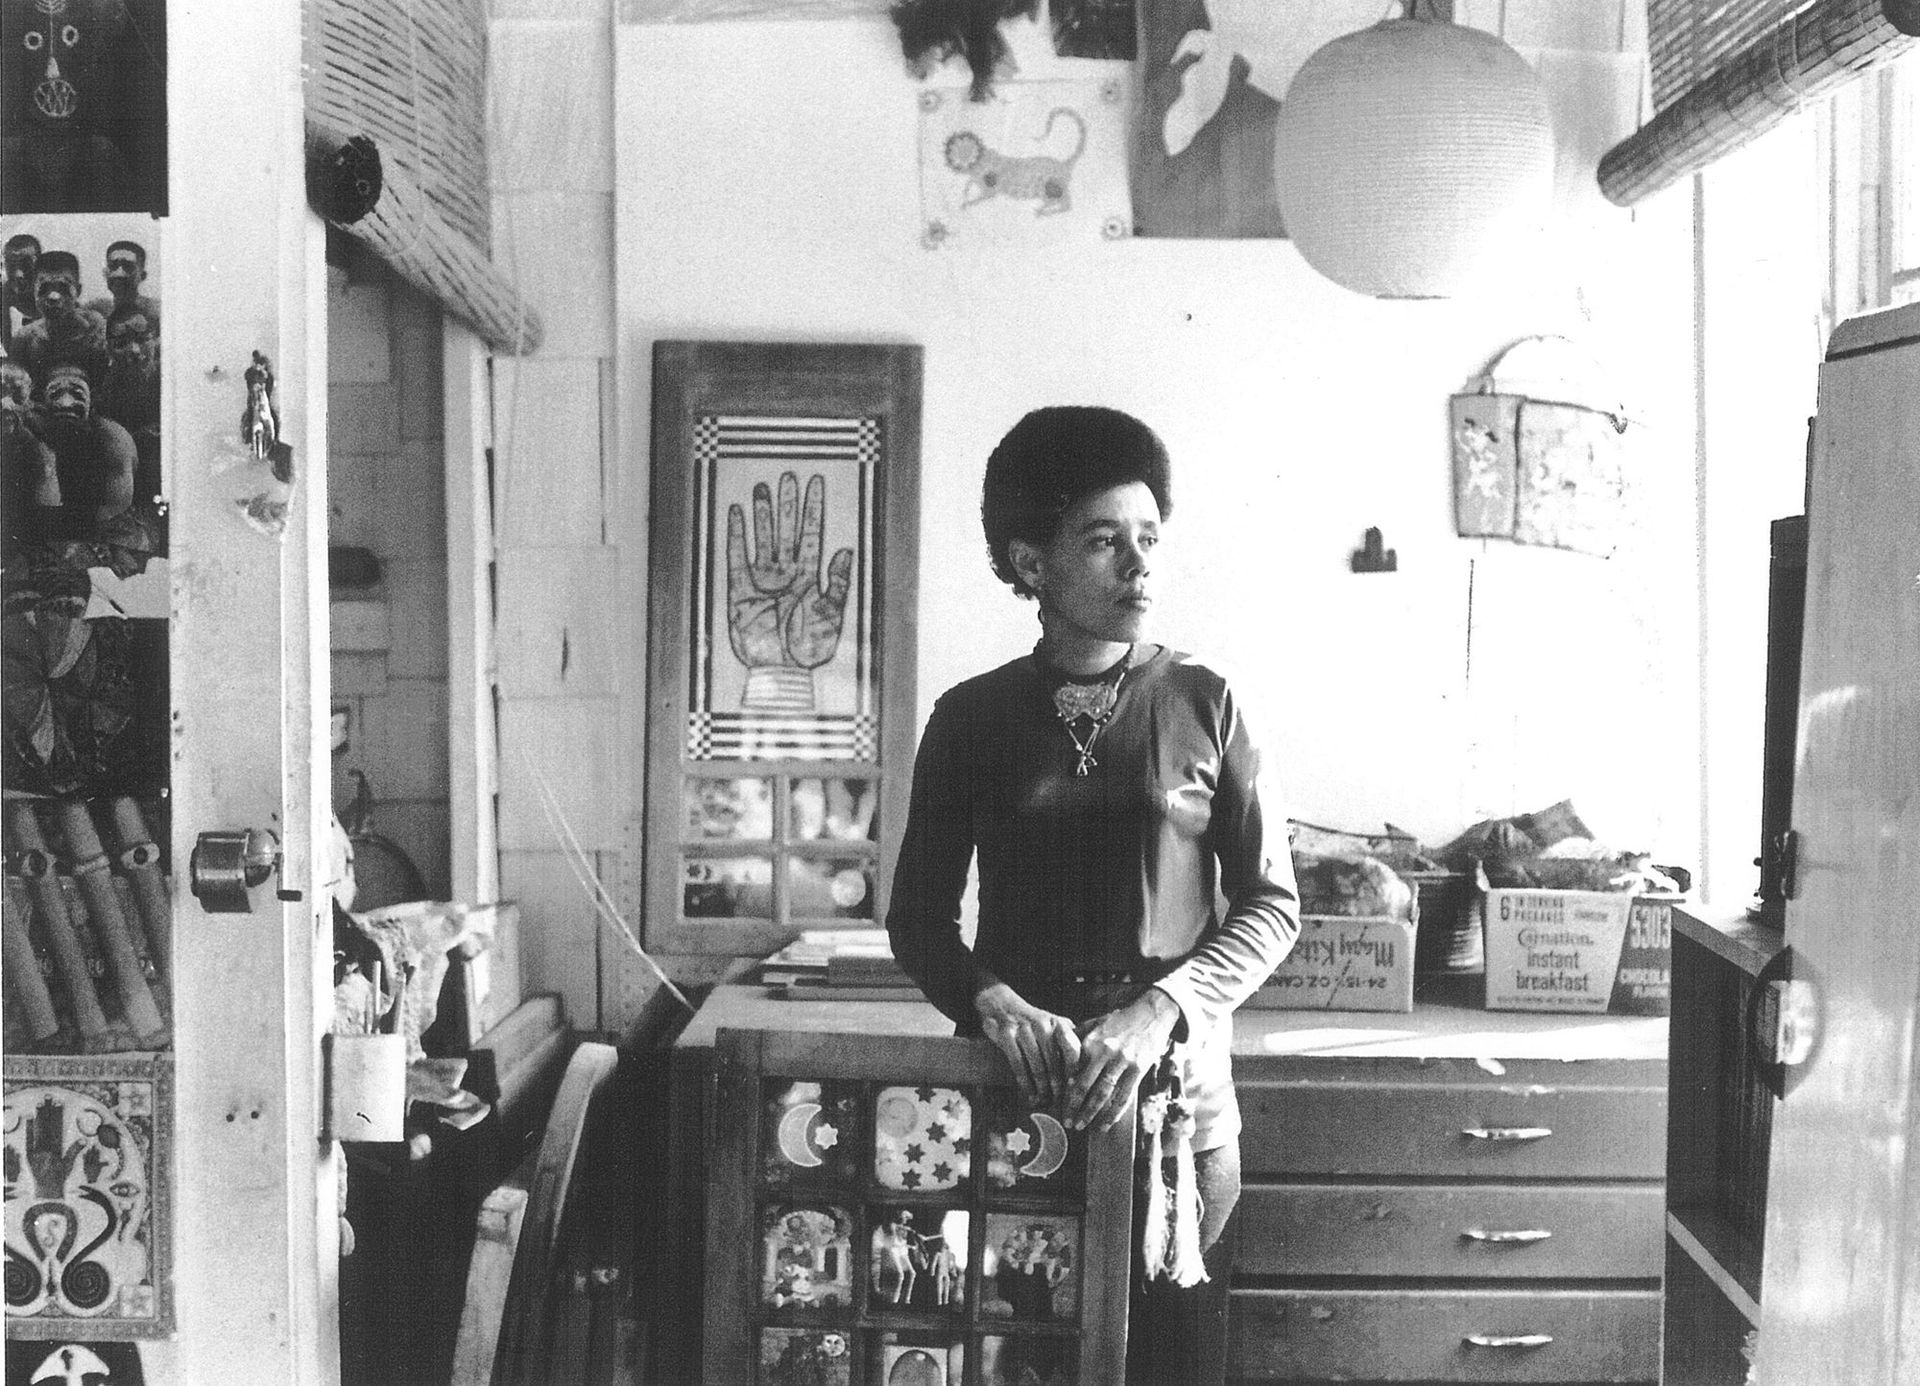 Betye Saar holding Black Girl's Window at her Laurel Canyon Studio, Los Angeles, California, 1970 Courtesy of the artist and Roberts Projects, Los Angeles, California, Photo Bob Nakamura. © 2019 Betye Saar, courtesy the artist and Robert Projects, Los Angeles